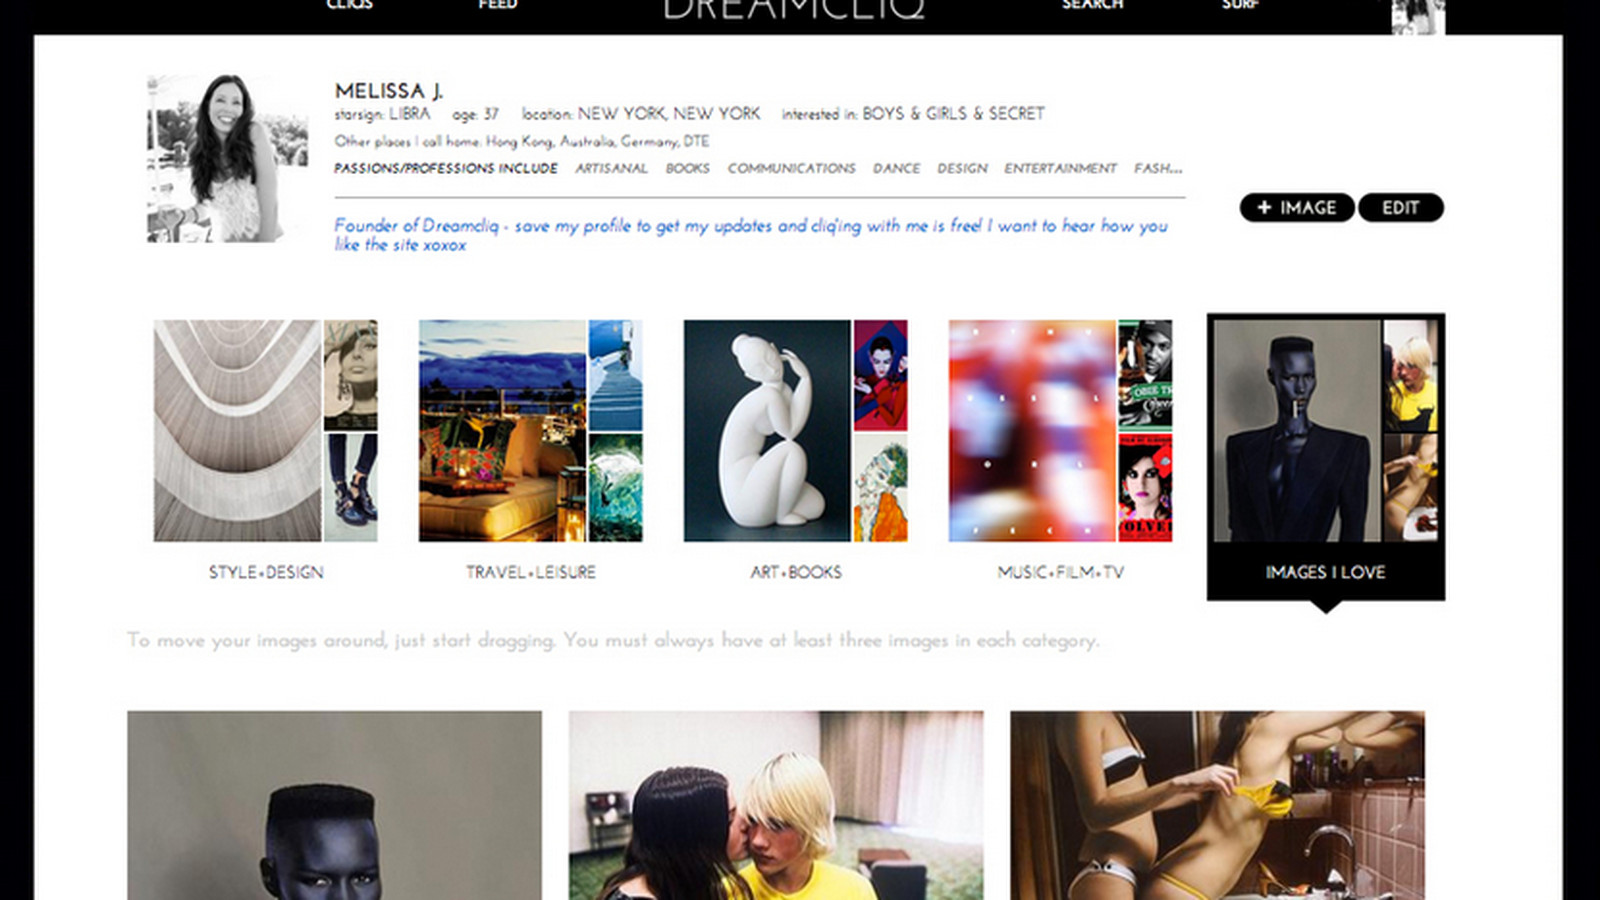 Meet Dreamcliq, the Pinterest of Dating Sites - Racked